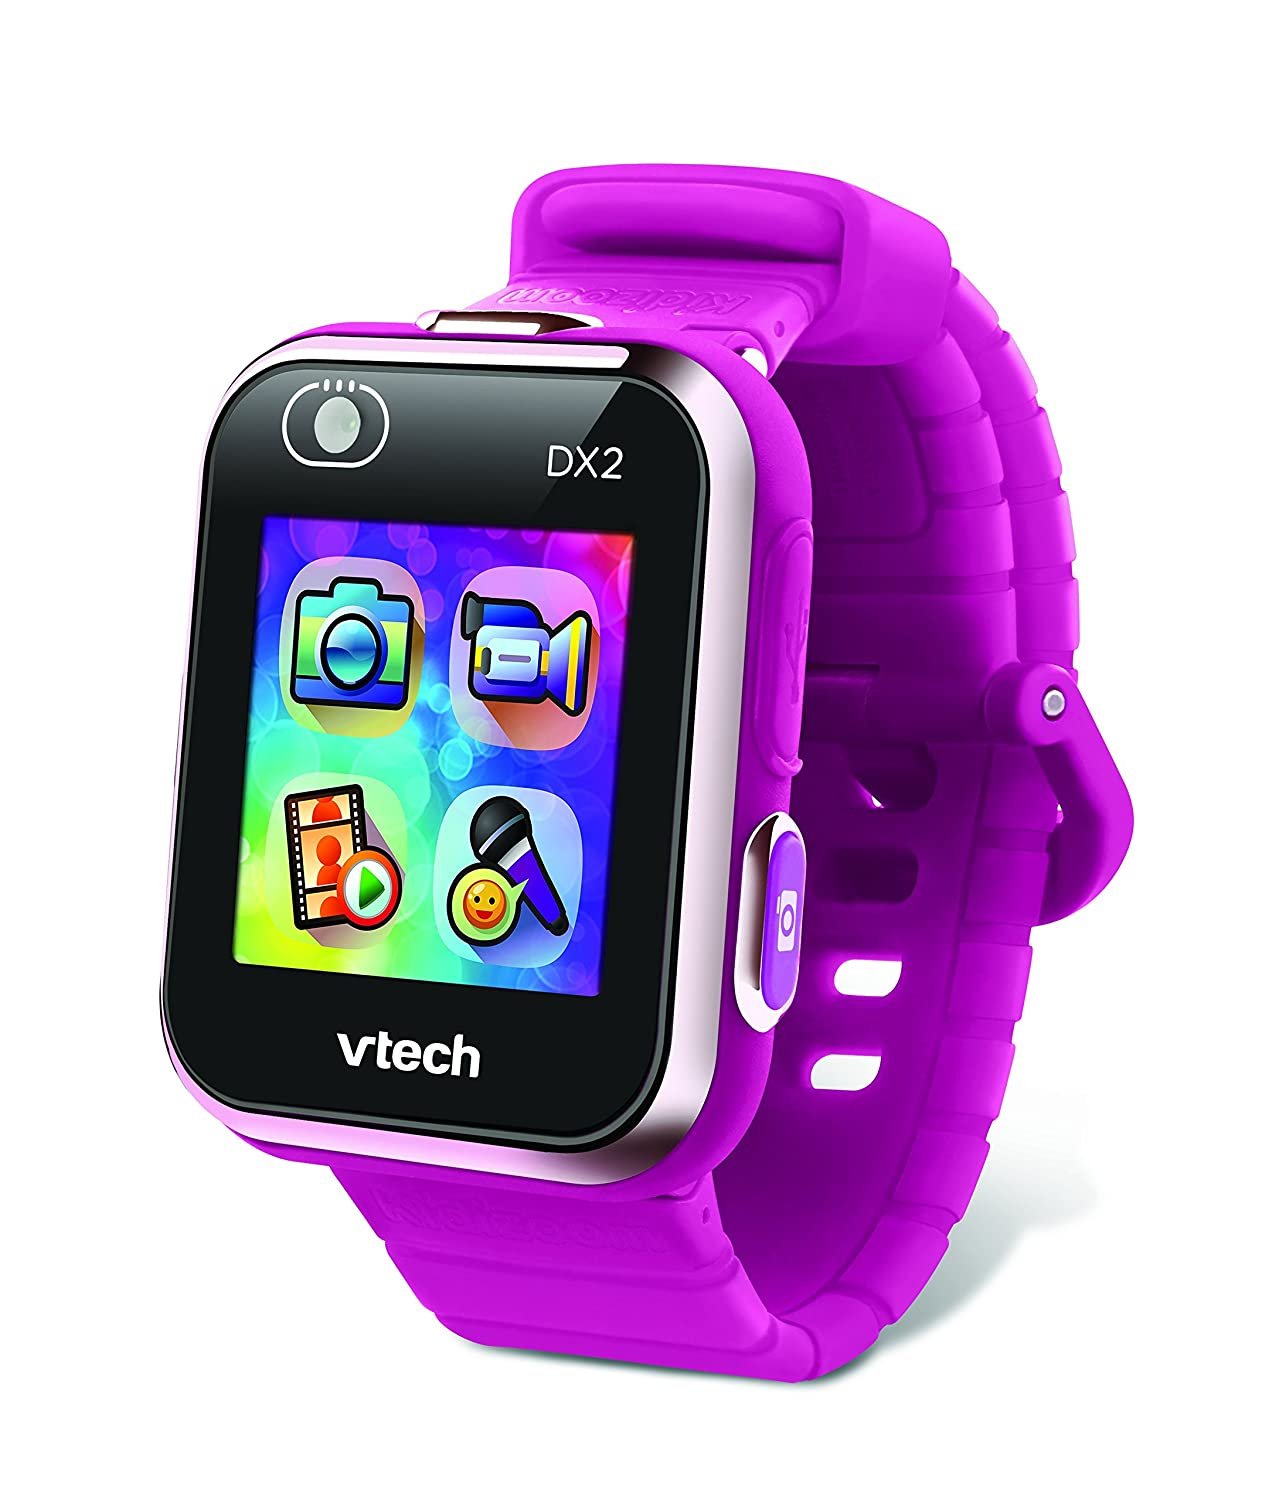 VTech- Connect DX2 Reloj, Color frambuesa, Norme (193845)